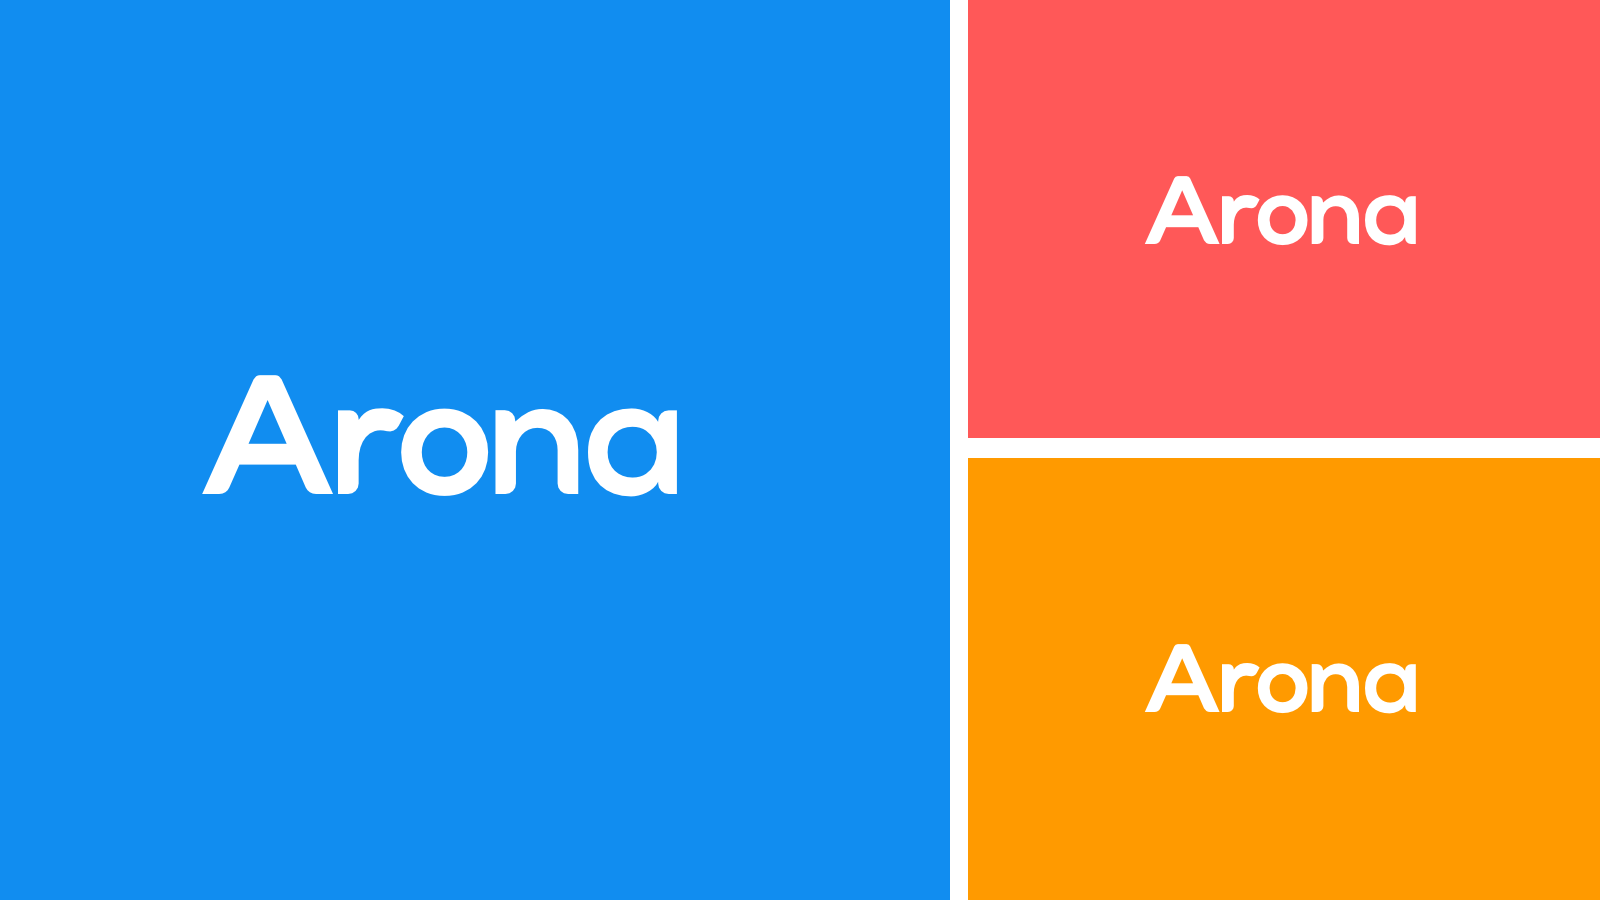 Best fonts for logos Arona